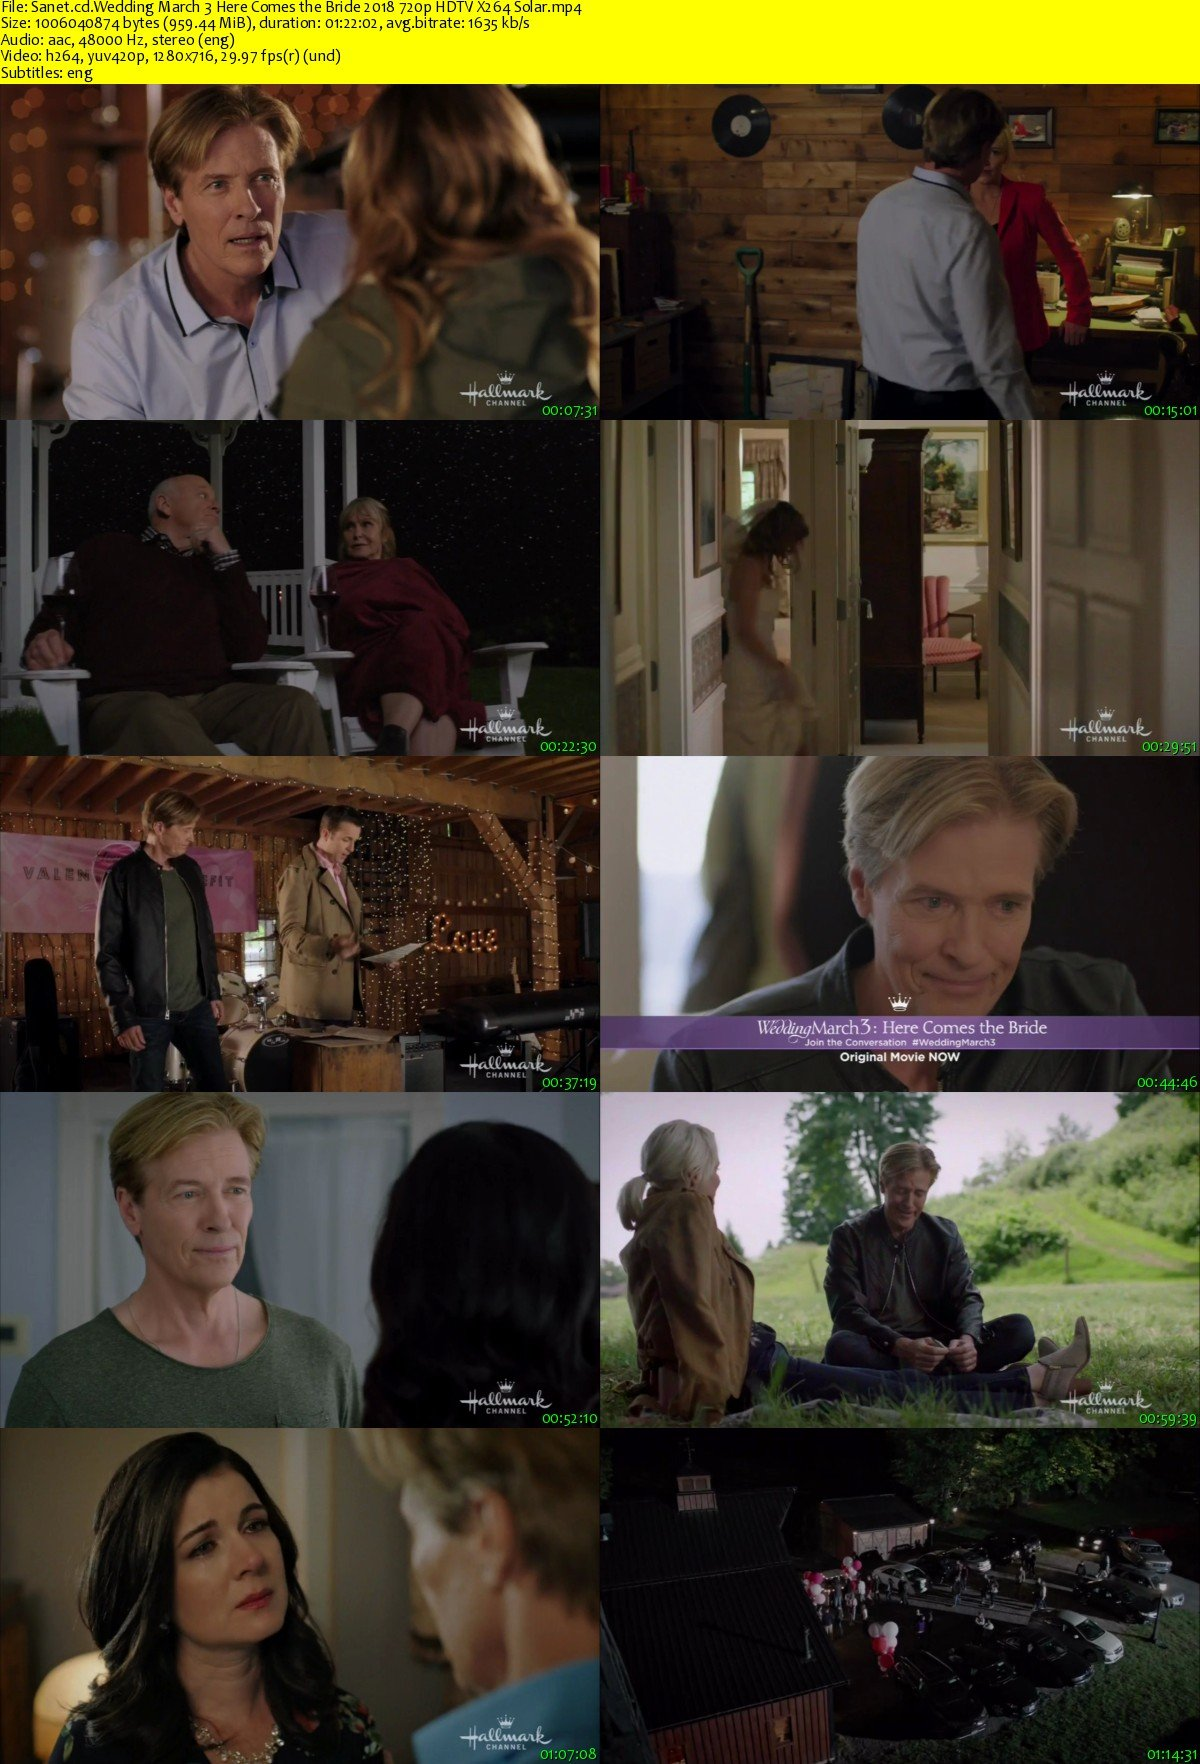 Wedding March 3.Download Wedding March 3 Here Comes The Bride 2018 720p Hdtv